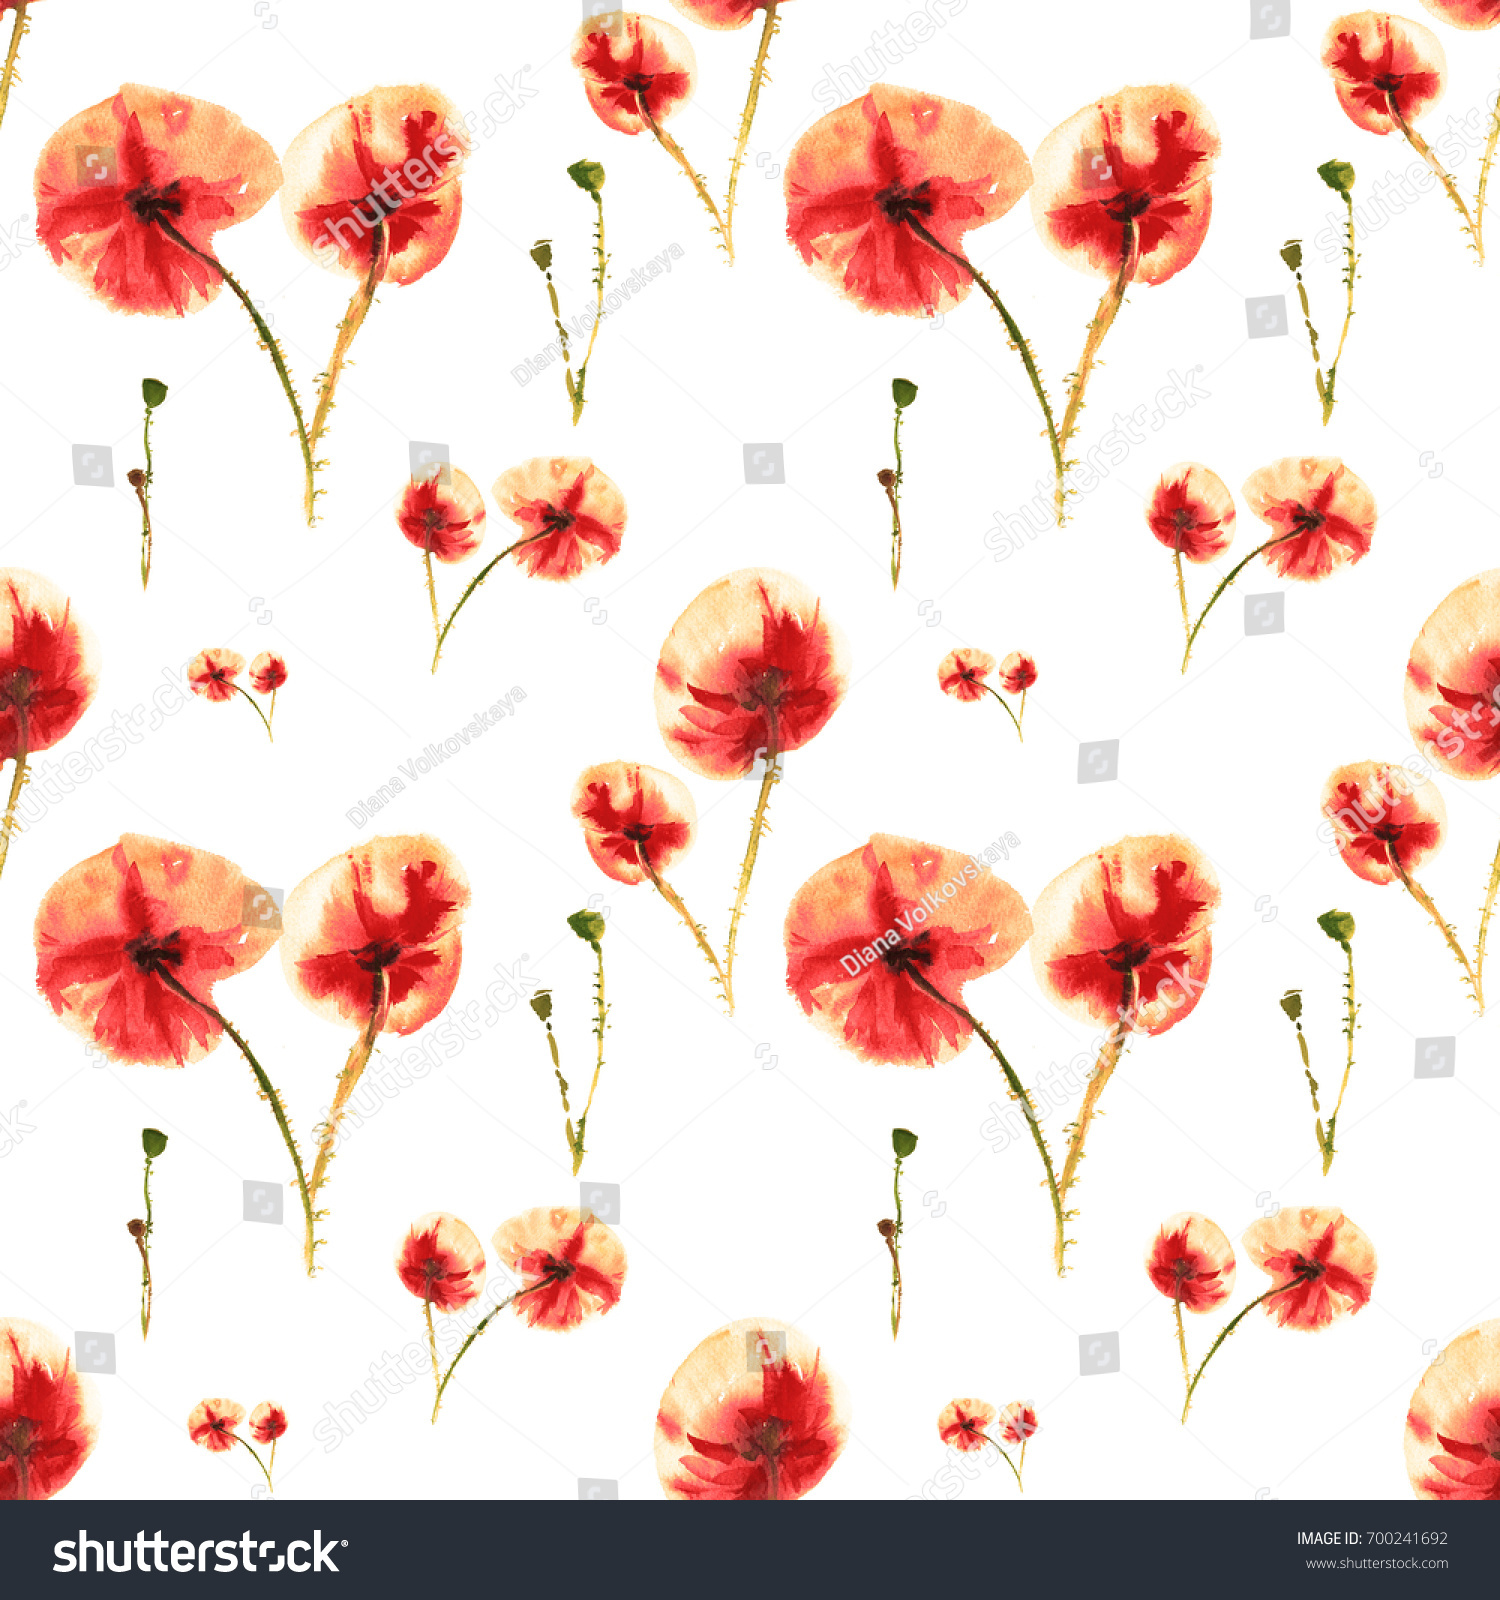 Seamless Red Orange Poppies Watercolor Painting Poppy Flower